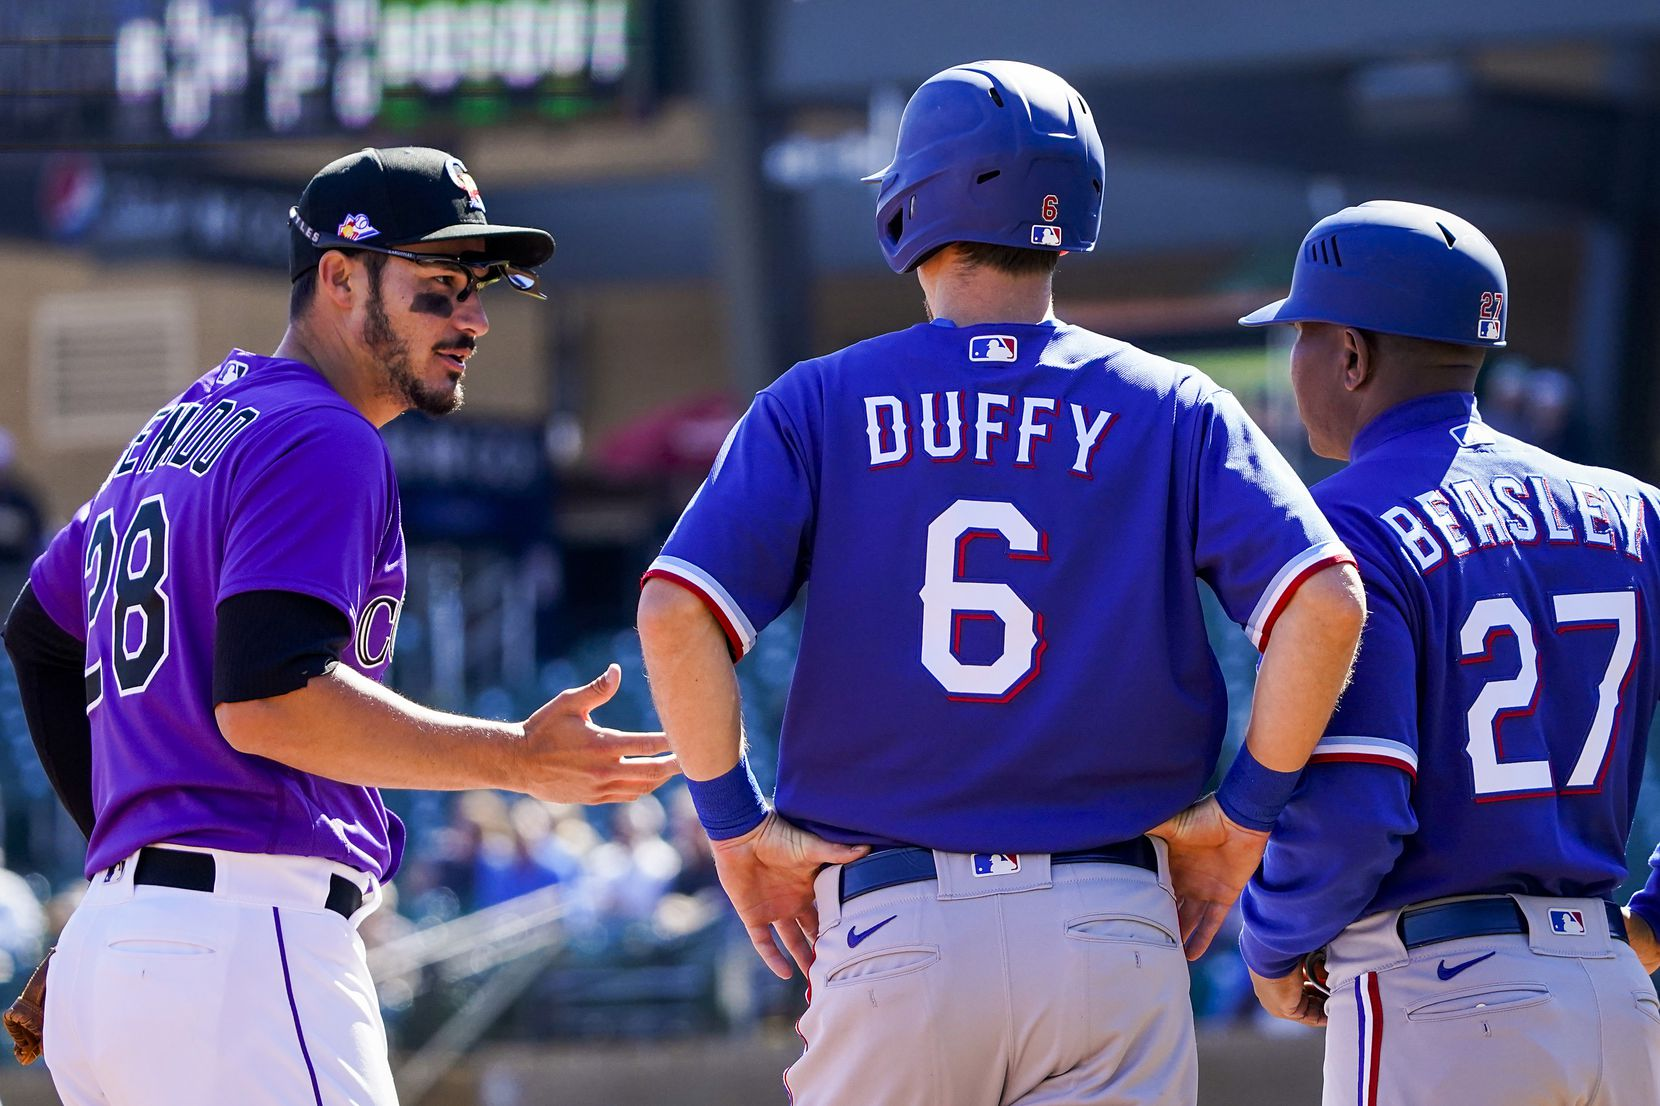 Colorado Rockies third baseman Nolan Arenado chats with Texas Rangers infielder Matt Duffy (6) and third base coach Tony Beasley (27) after Duffy advance from first to third on a double by Scott Heineman during the second inning of a spring training game at Salt River Fields at Talking Stick on Wednesday, Feb. 26, 2020, in Scottsdale, Ariz.